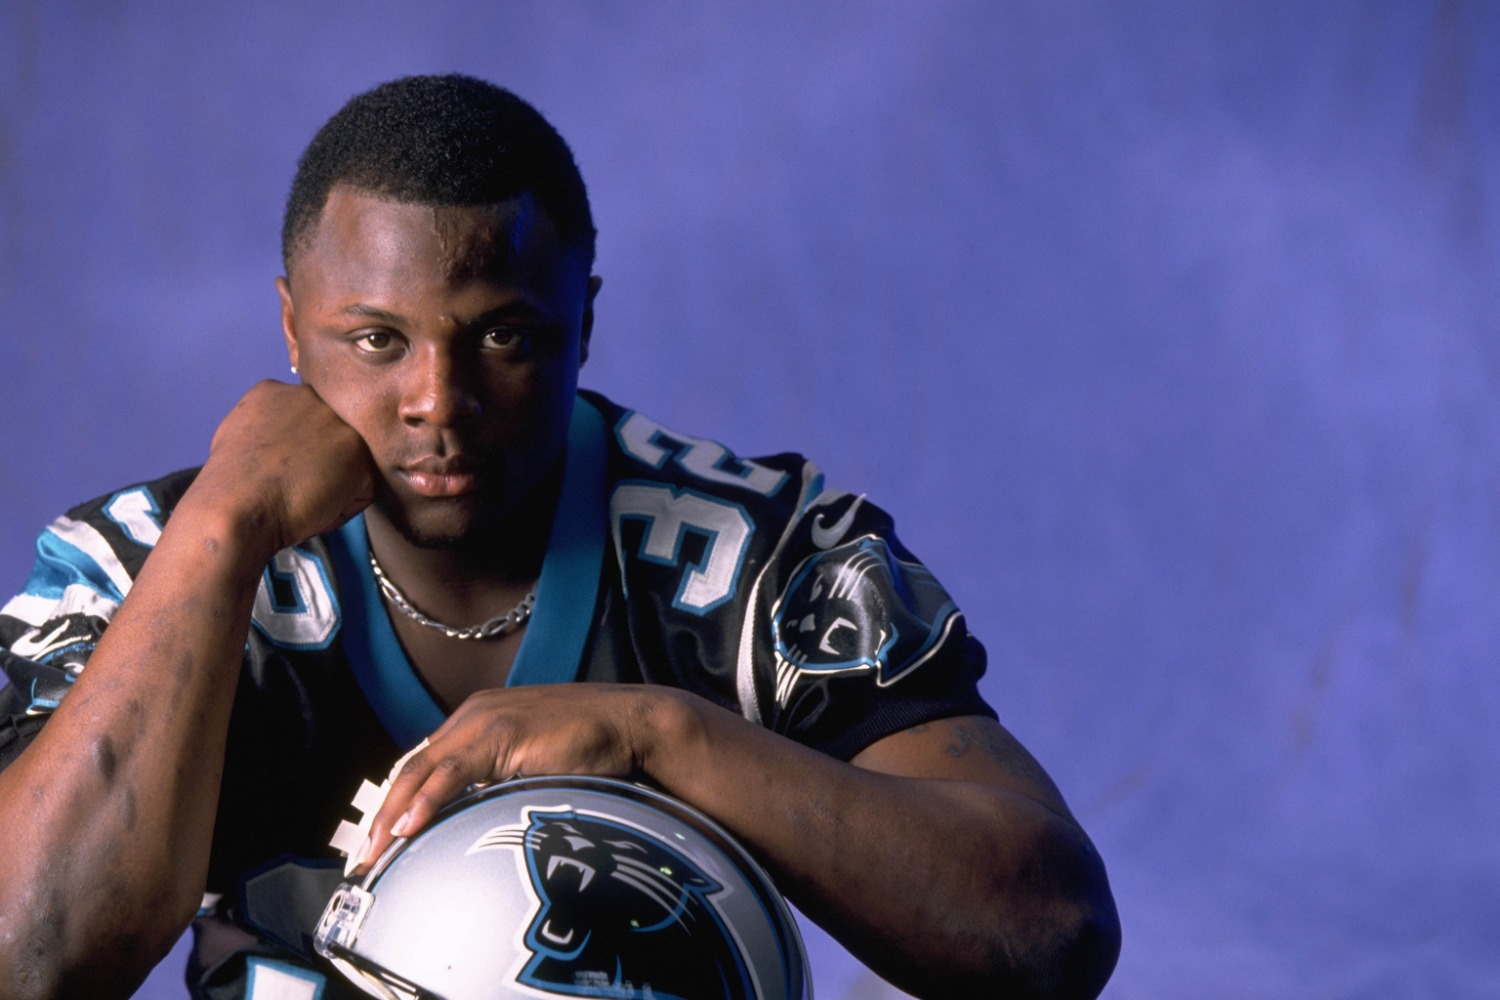 Carolina Panthers running back Fred Lane suffered a tragic death when his wife shot and killed him.